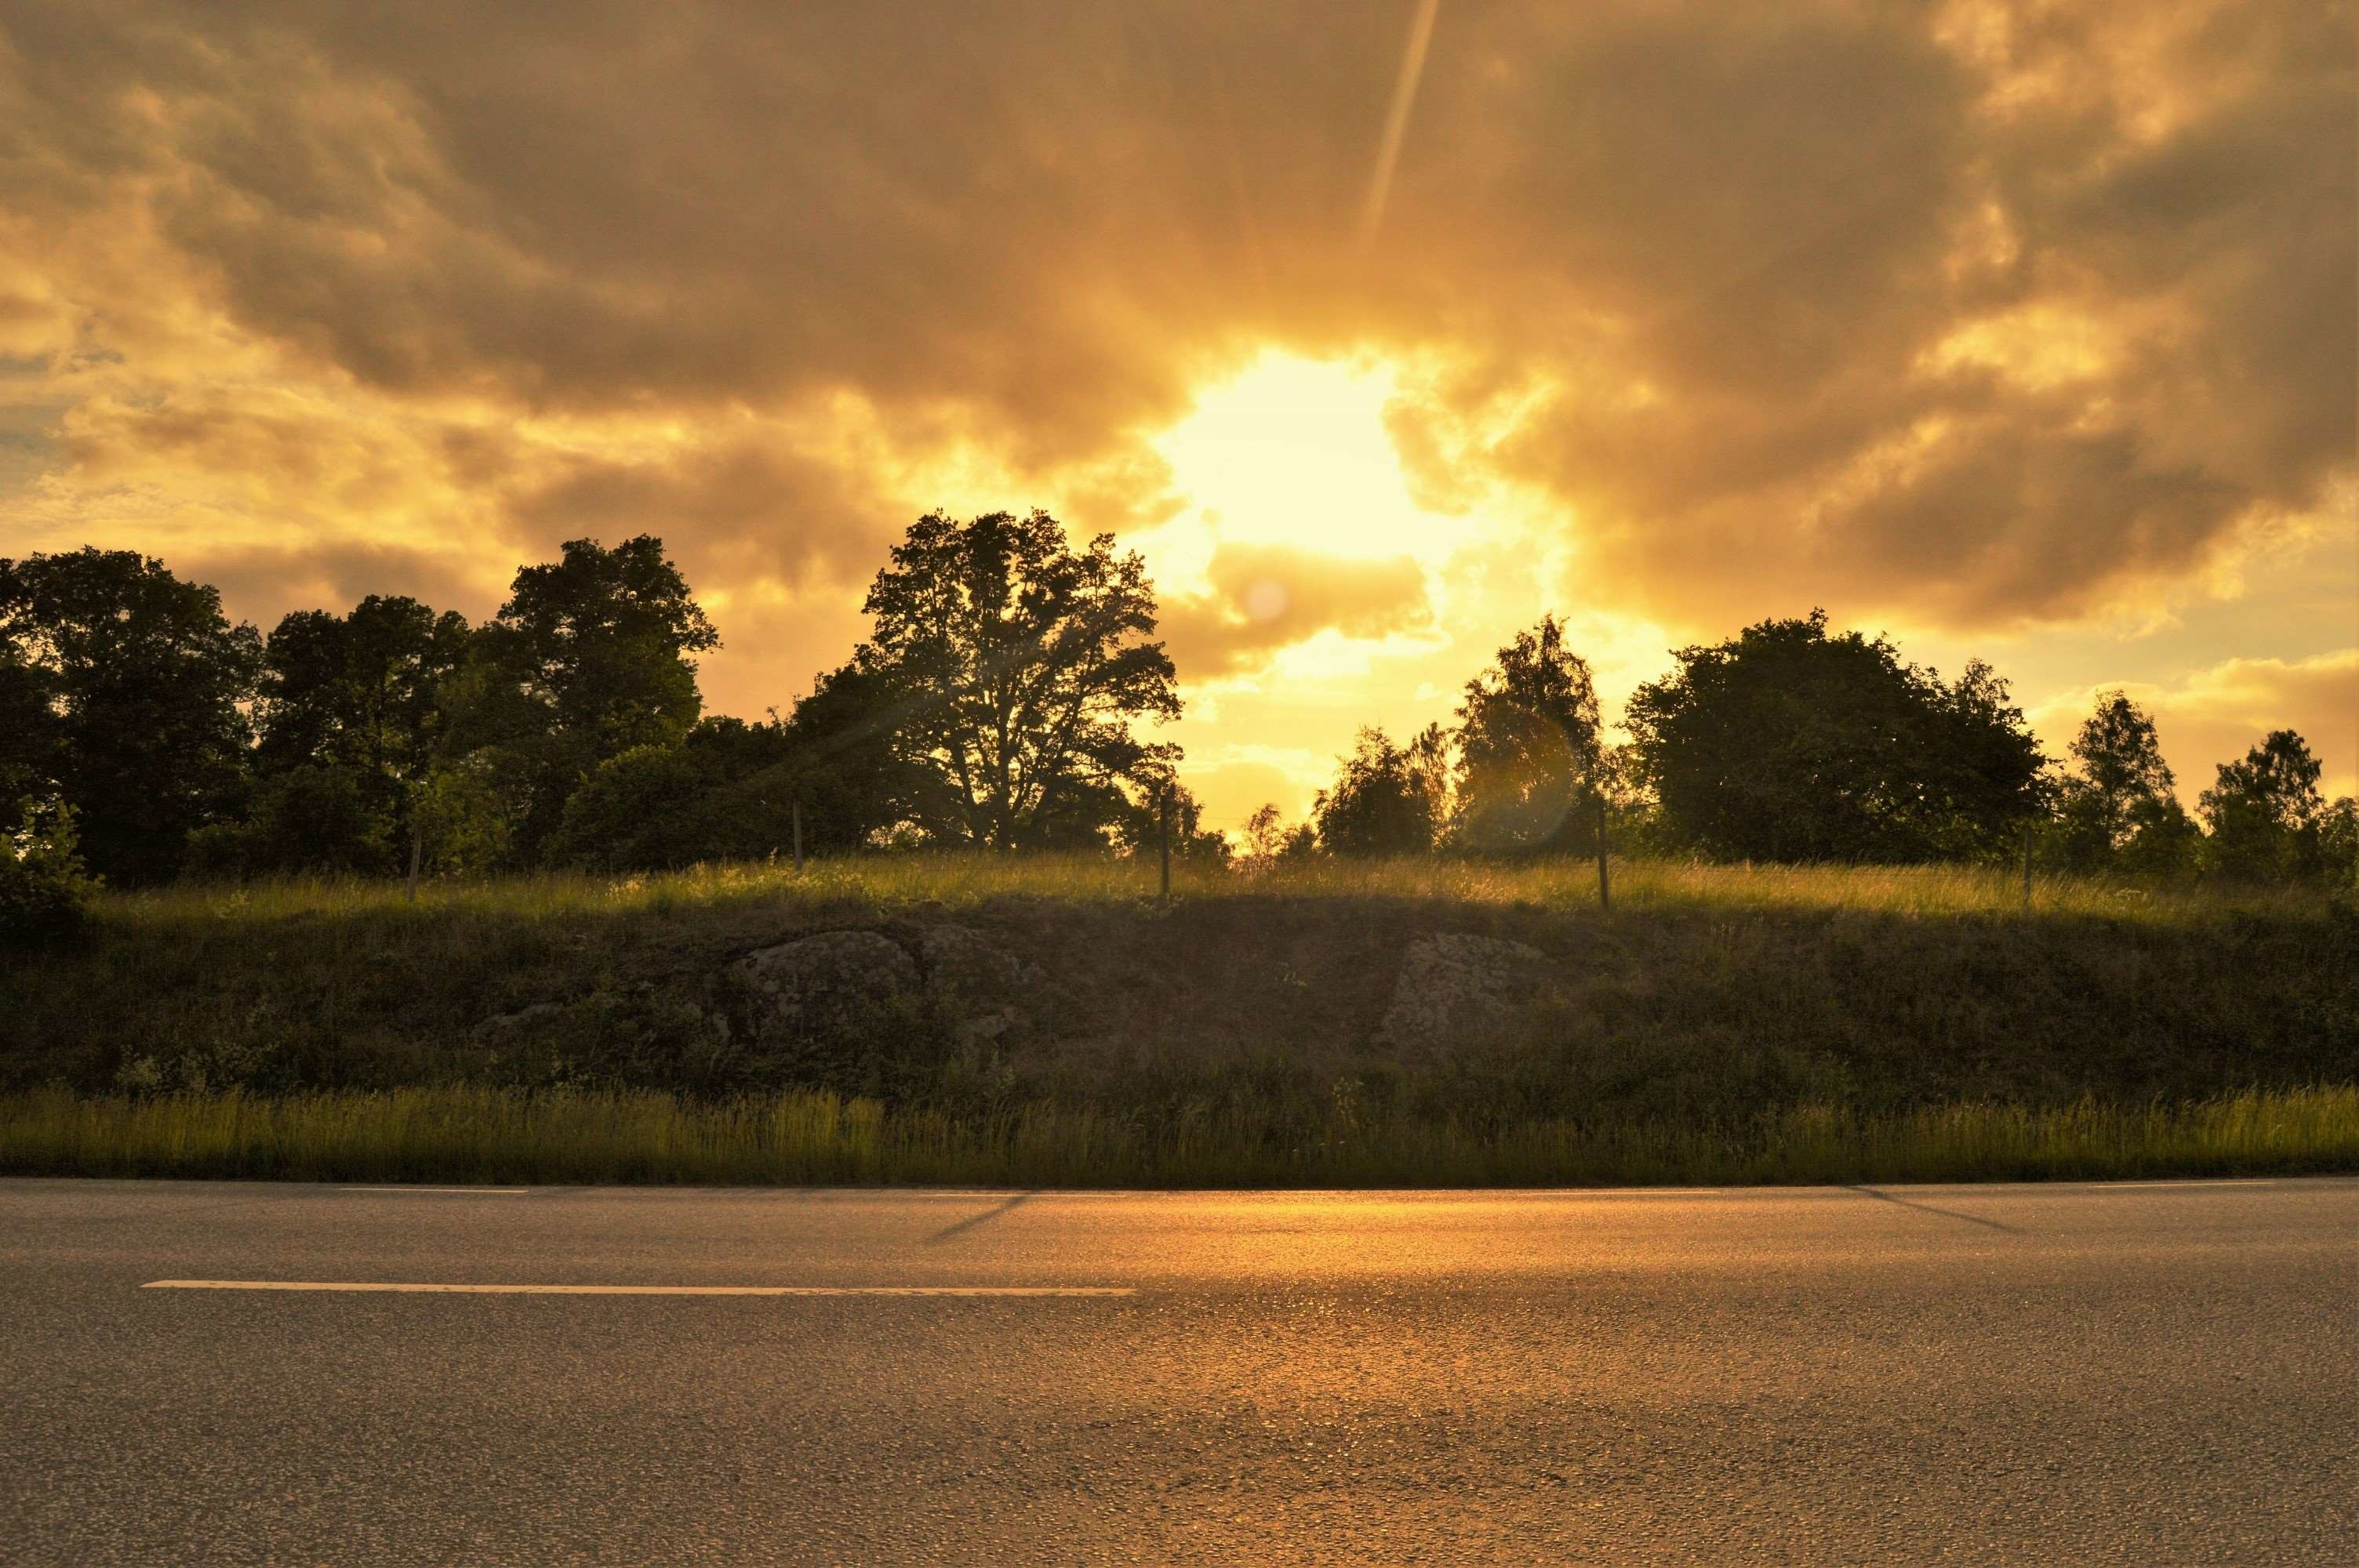 Res: 3008x2000, cloud, evening, forest, himmel, nature, outdoor, road, solar, summer, sunset,  sweden, the evening sky, tree, views wallpaper and background